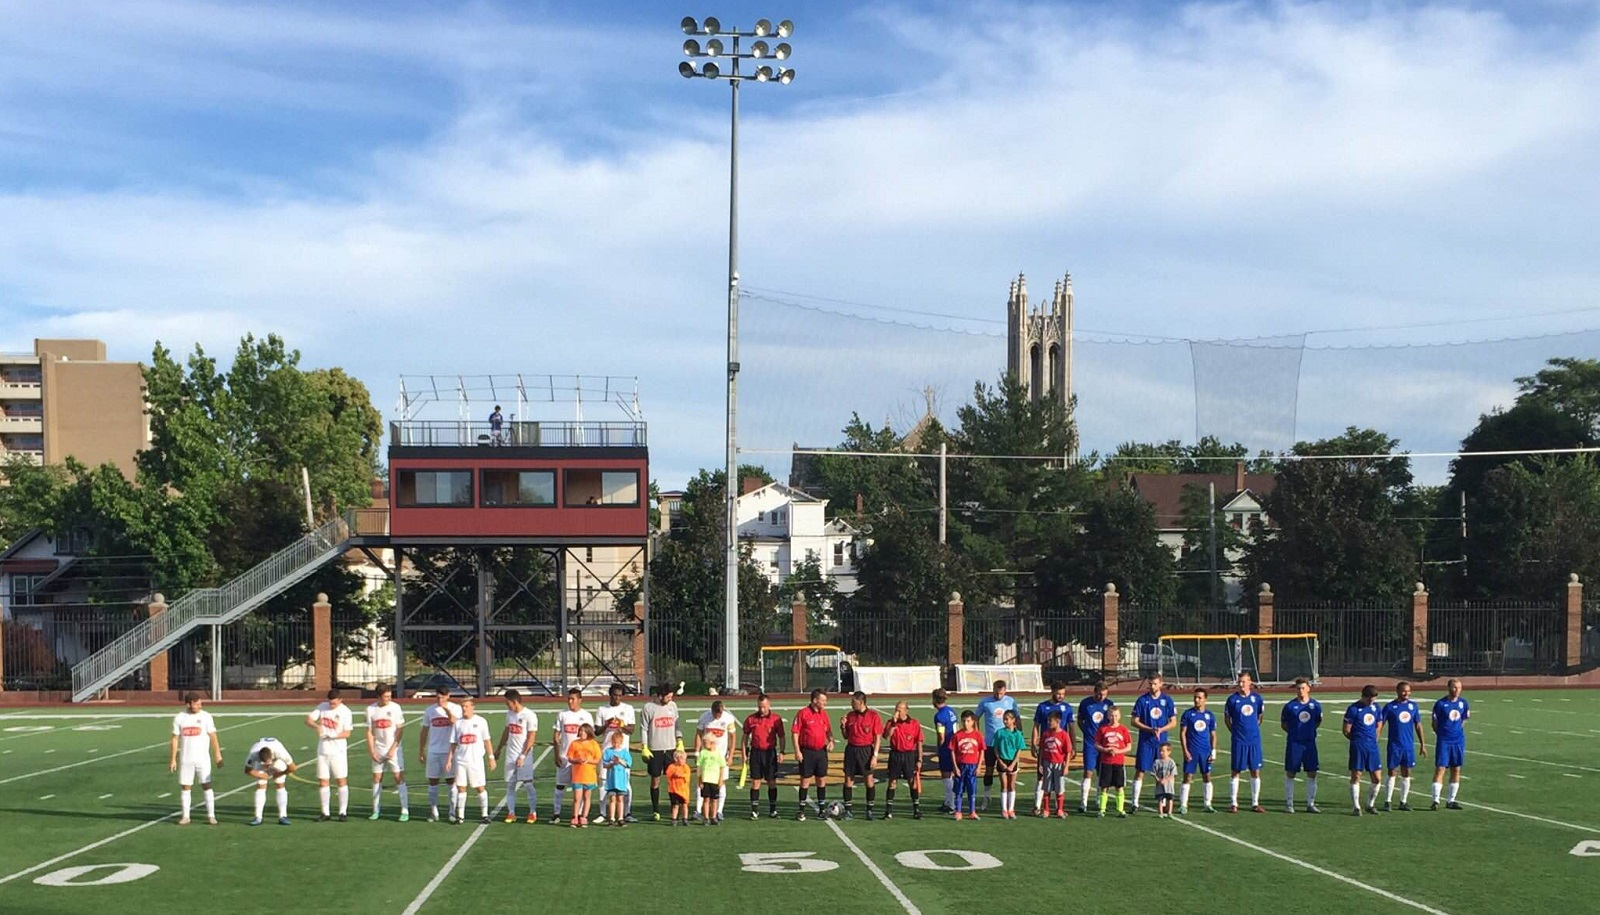 The starting lineups for FC Buffalo and Erie face the fans before the match. (Ben Tsujimoto/Buffalo News)